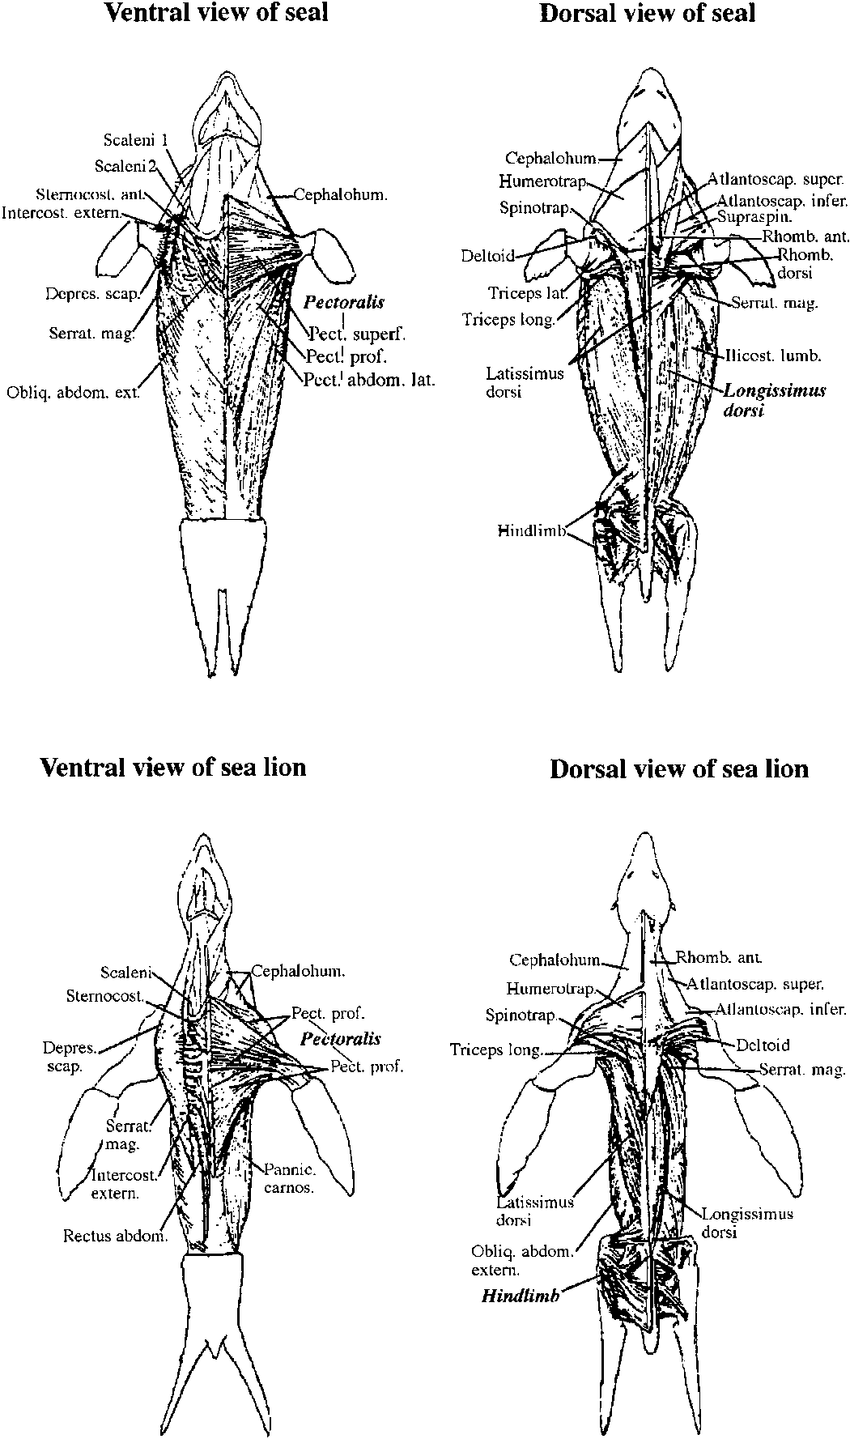 hight resolution of skeletal muscle anatomy of seals and sea lions biopsy samples of organs diagram to label lion organs diagram